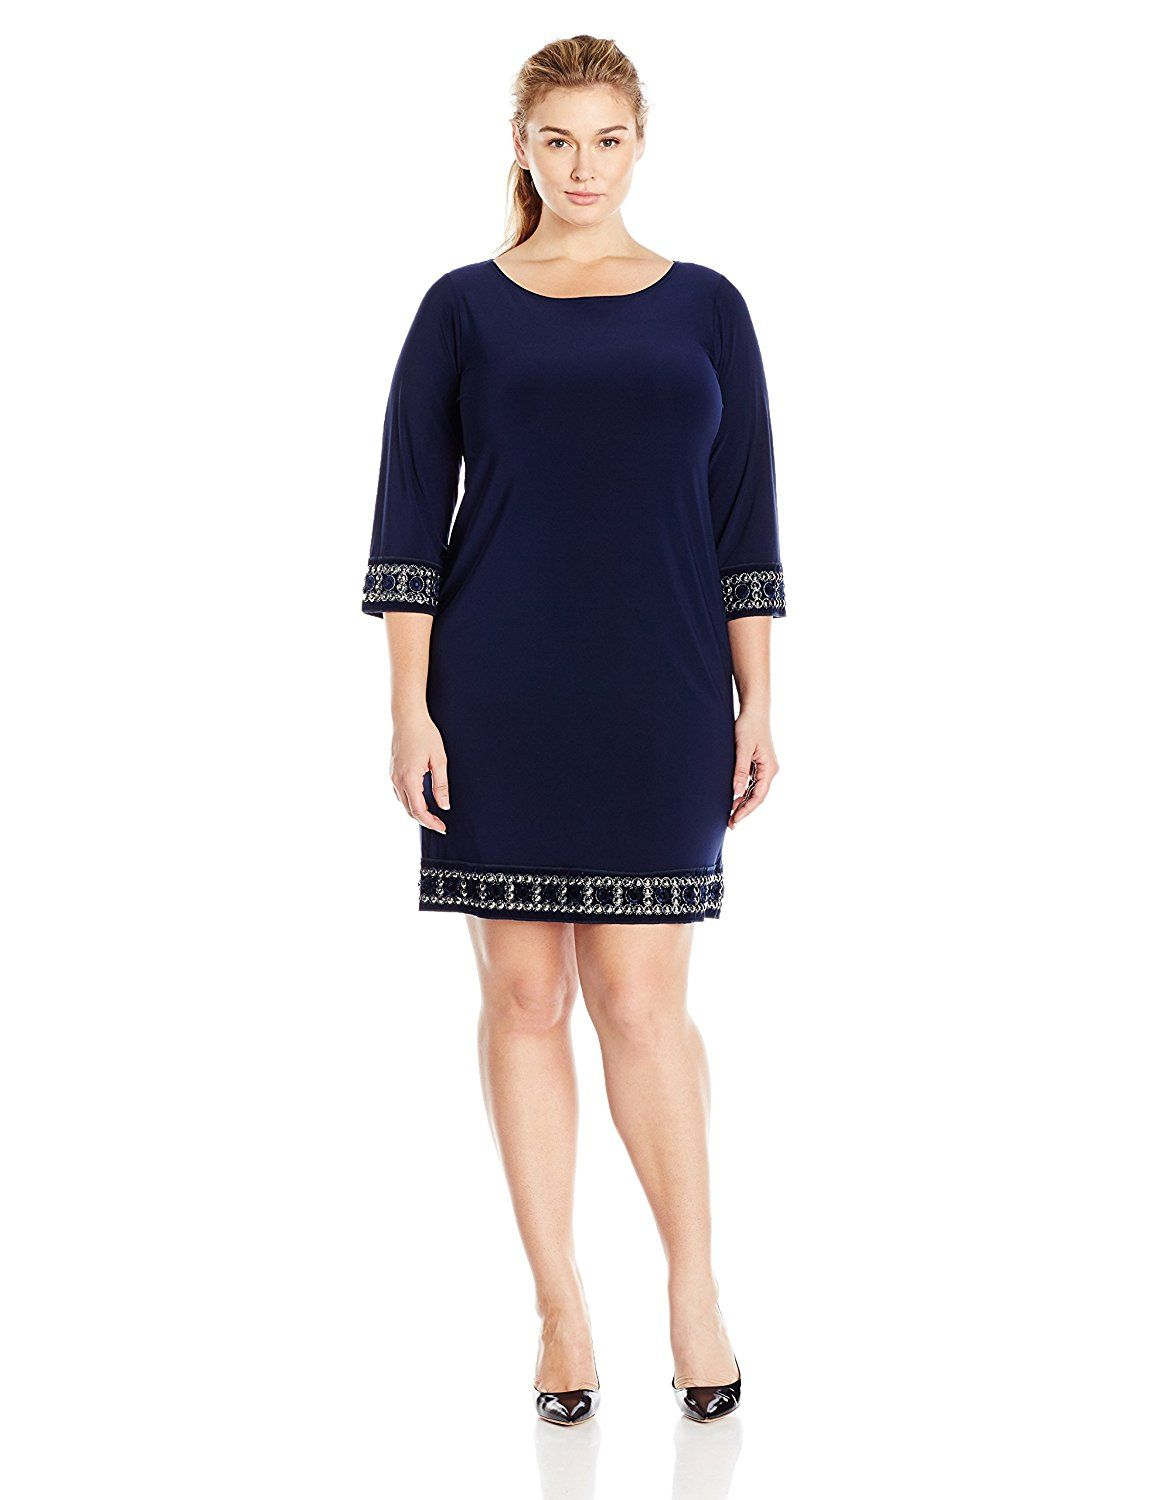 Tiana B Women's Plus-Size Three-Quarter-Sleeve Embellished Cuff and Trim Dress -- You can get more details by clicking on the image.